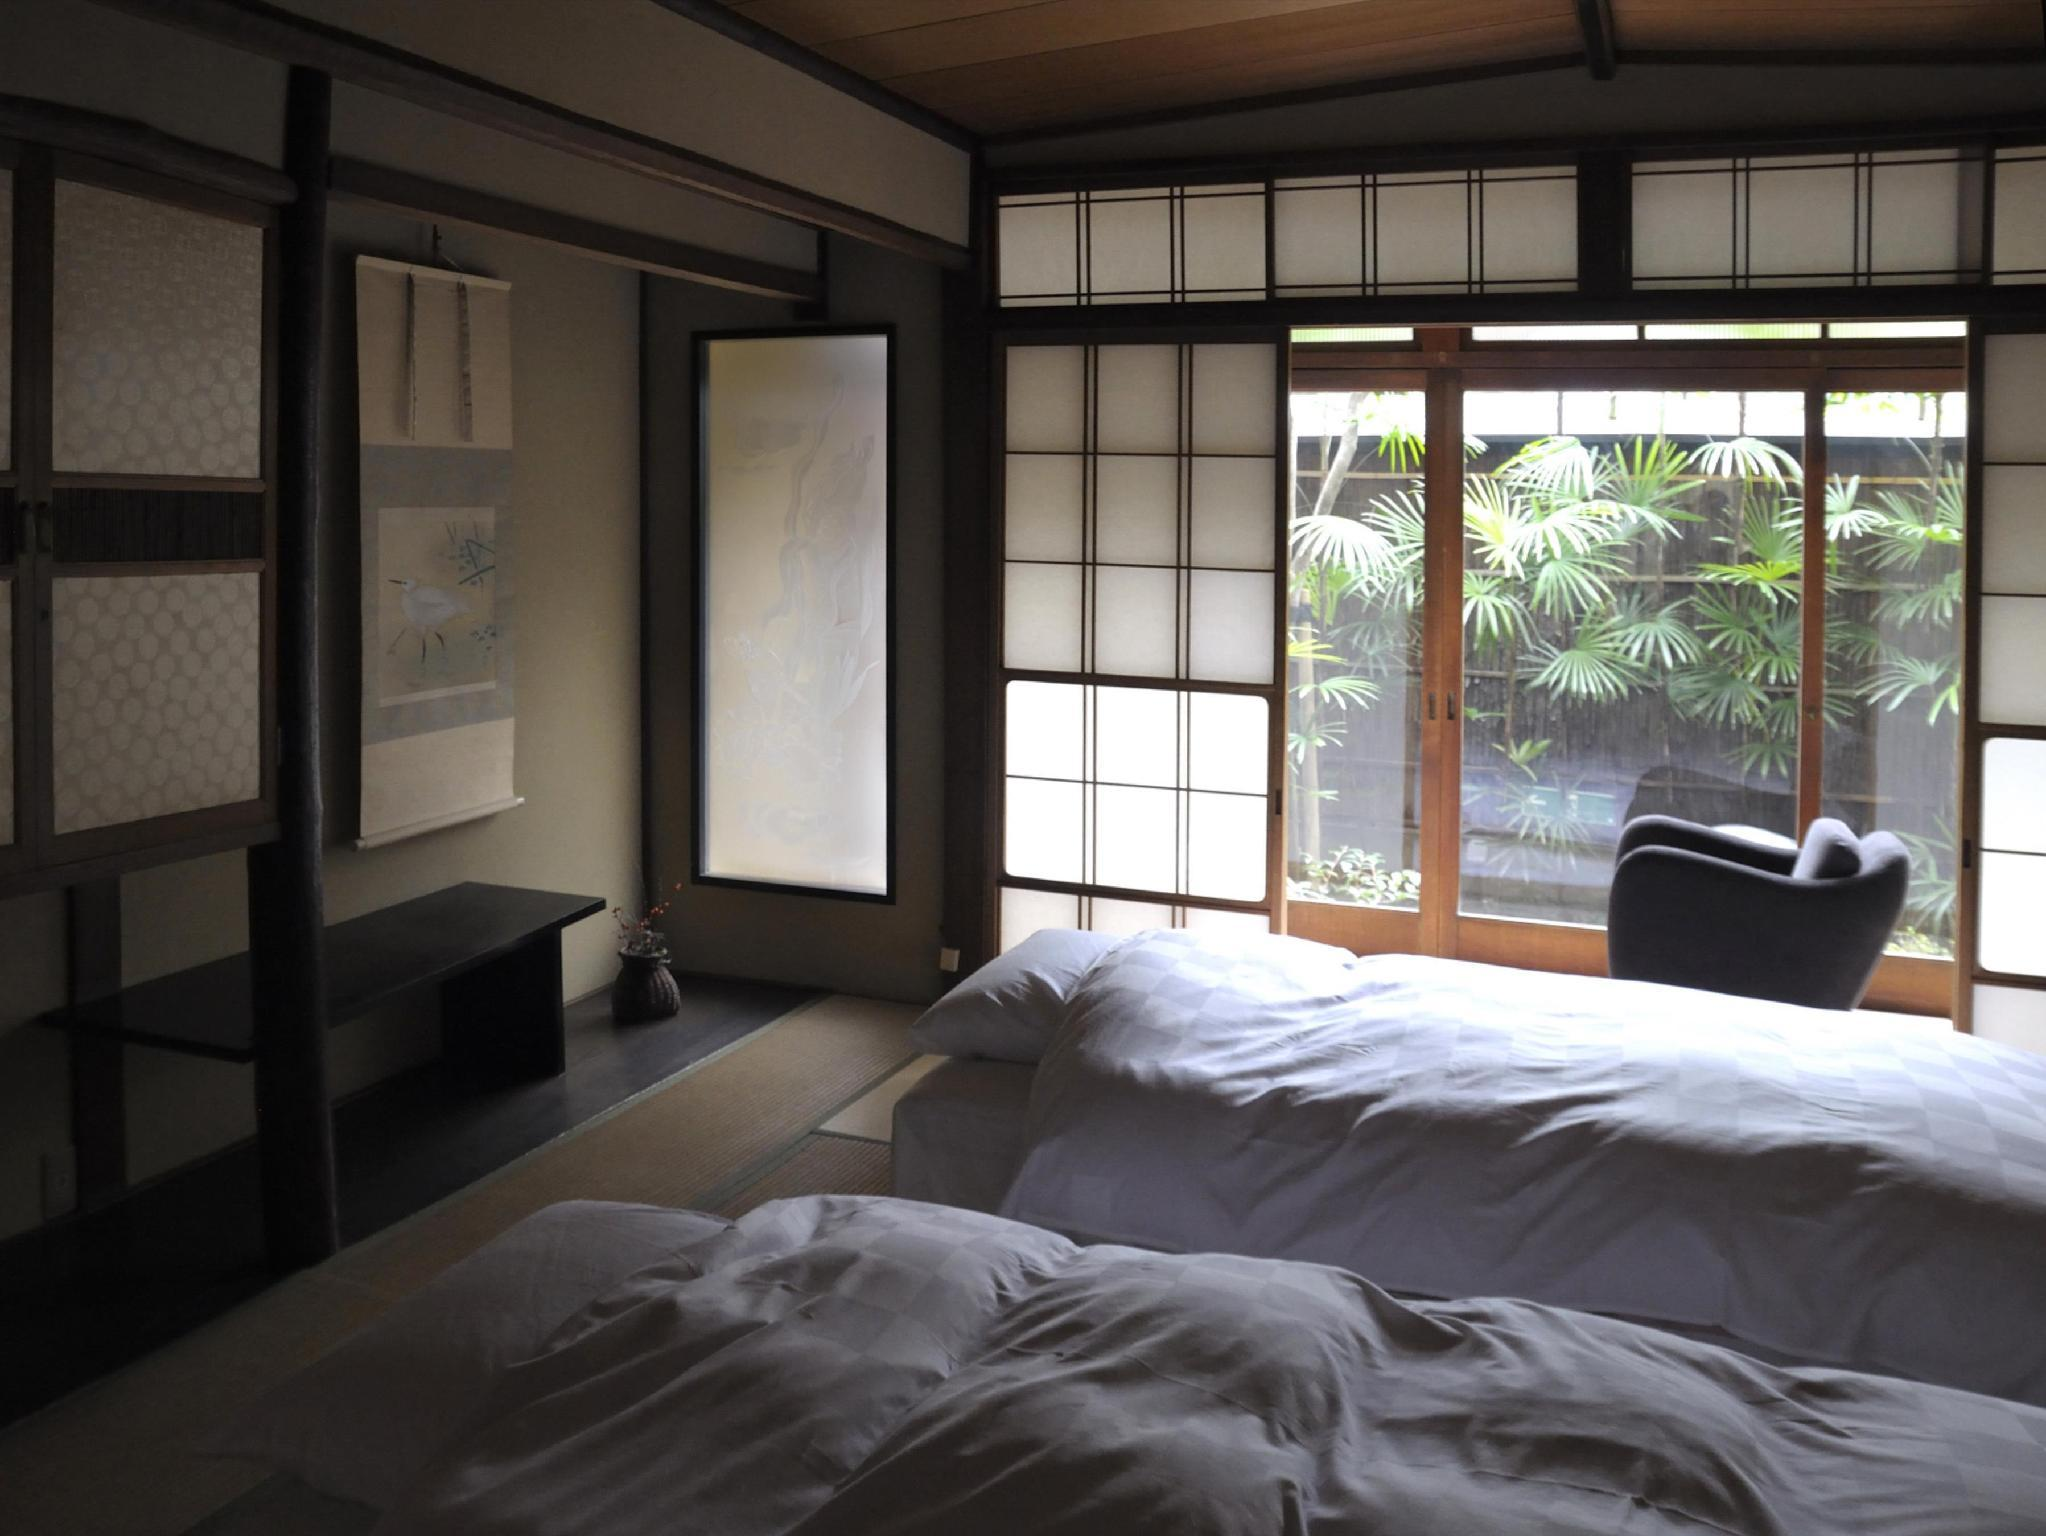 Best Price On Traditional Kyoto Inn Serving Kyoto Cuisine